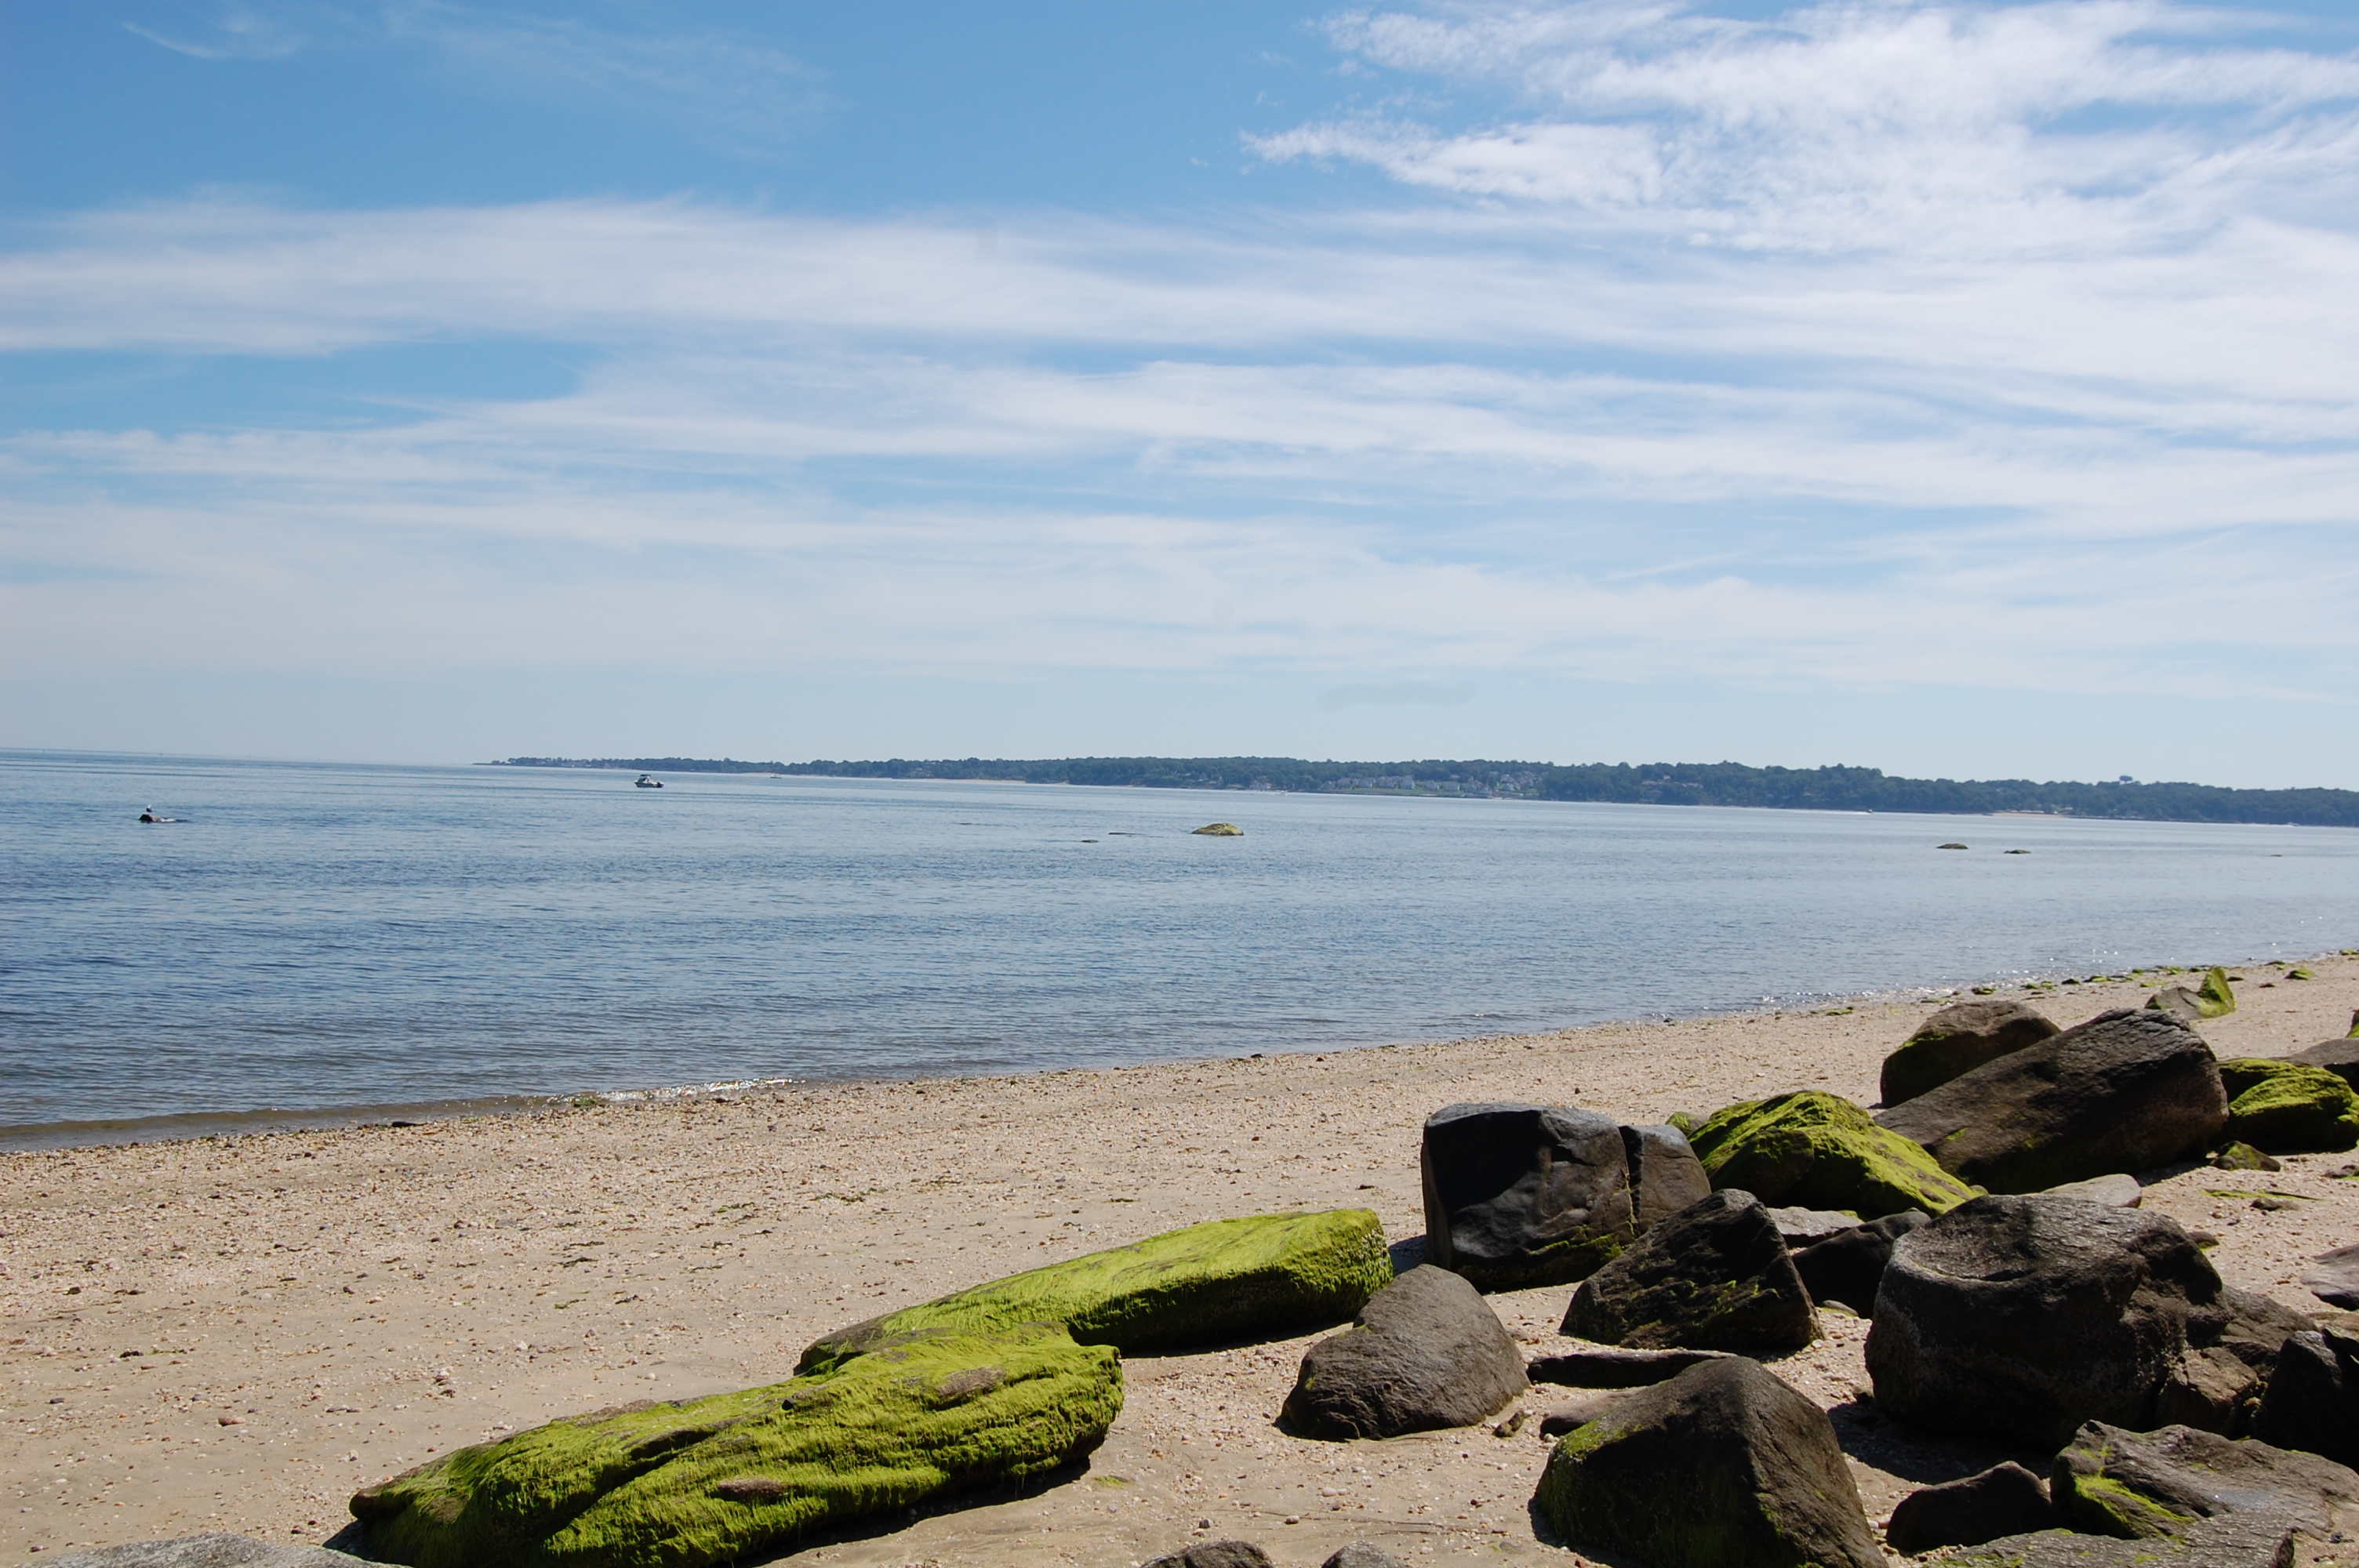 Shore of the Long Island Sound